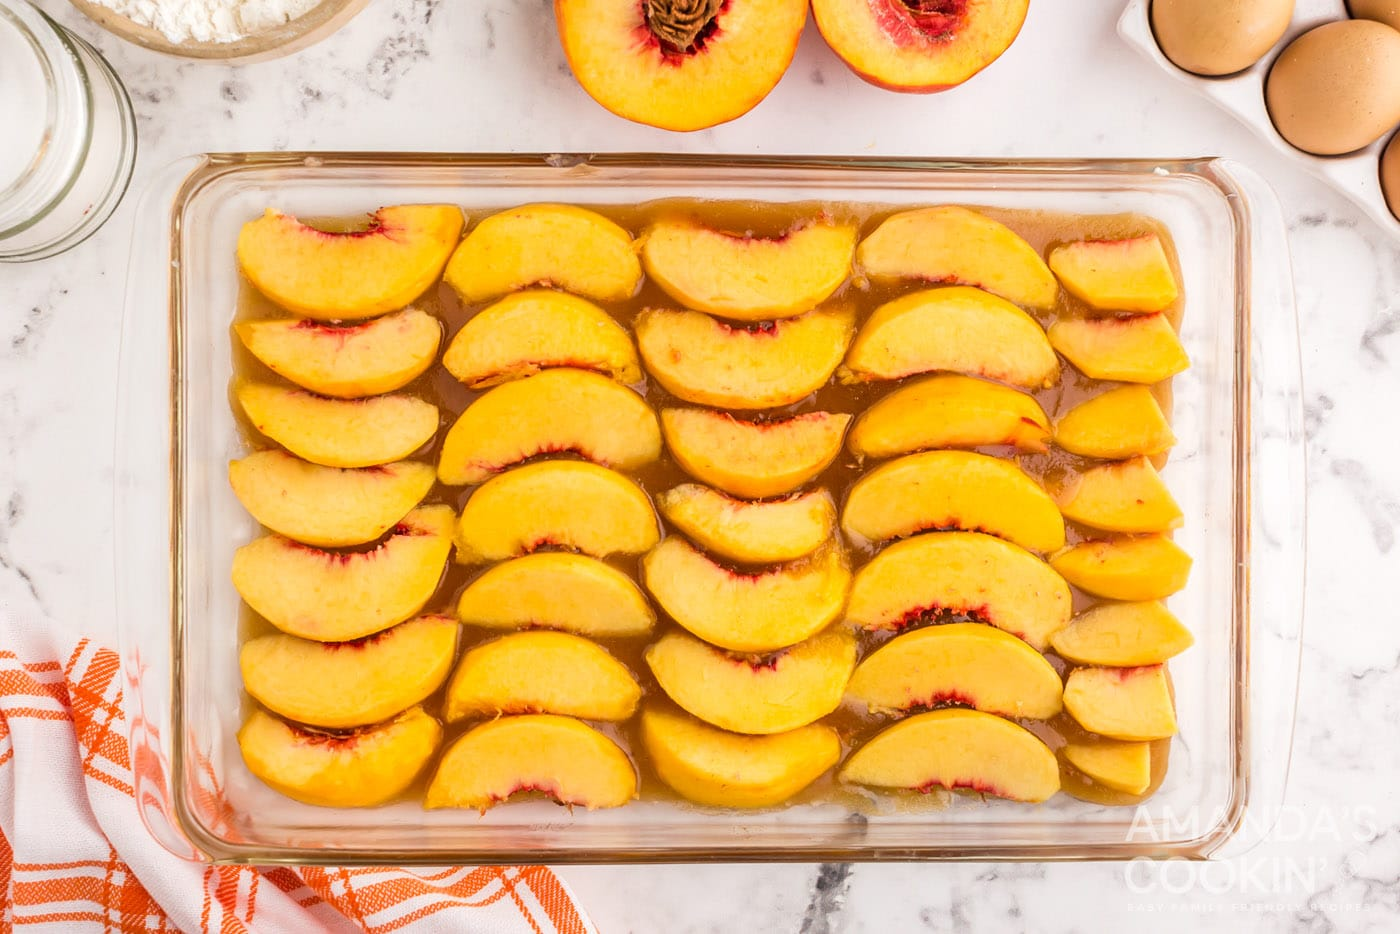 peach slices on top of butter and brown sugar mixture in a baking dish